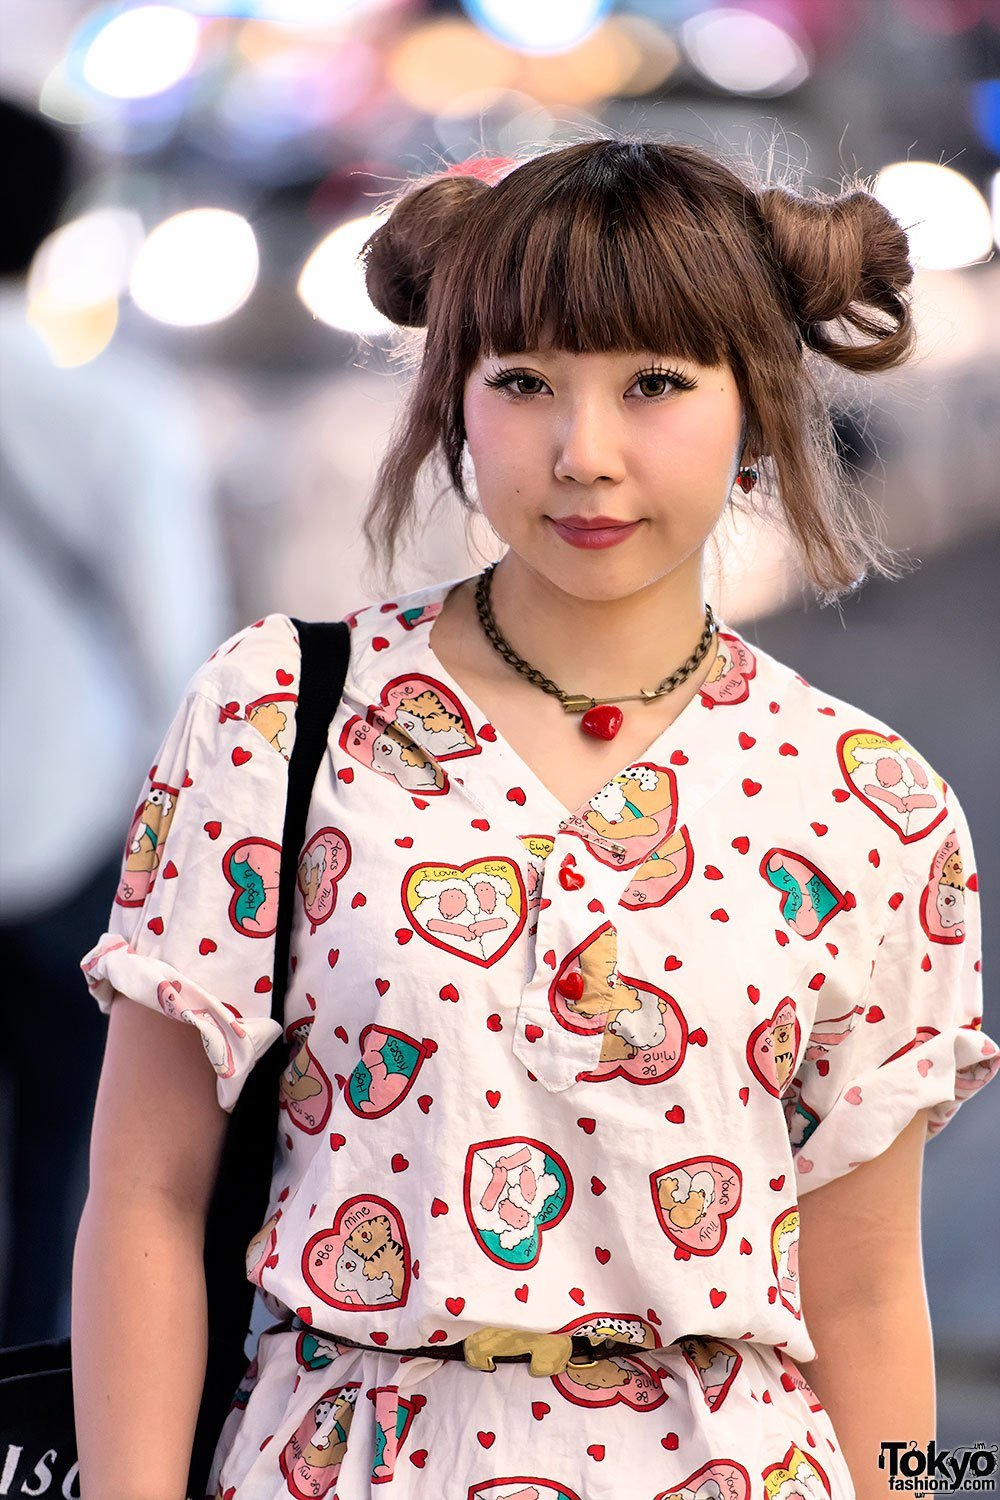 The Best Kawaii Harajuku Street Style W Sp*Nk Creepers Odango Hair Pictures